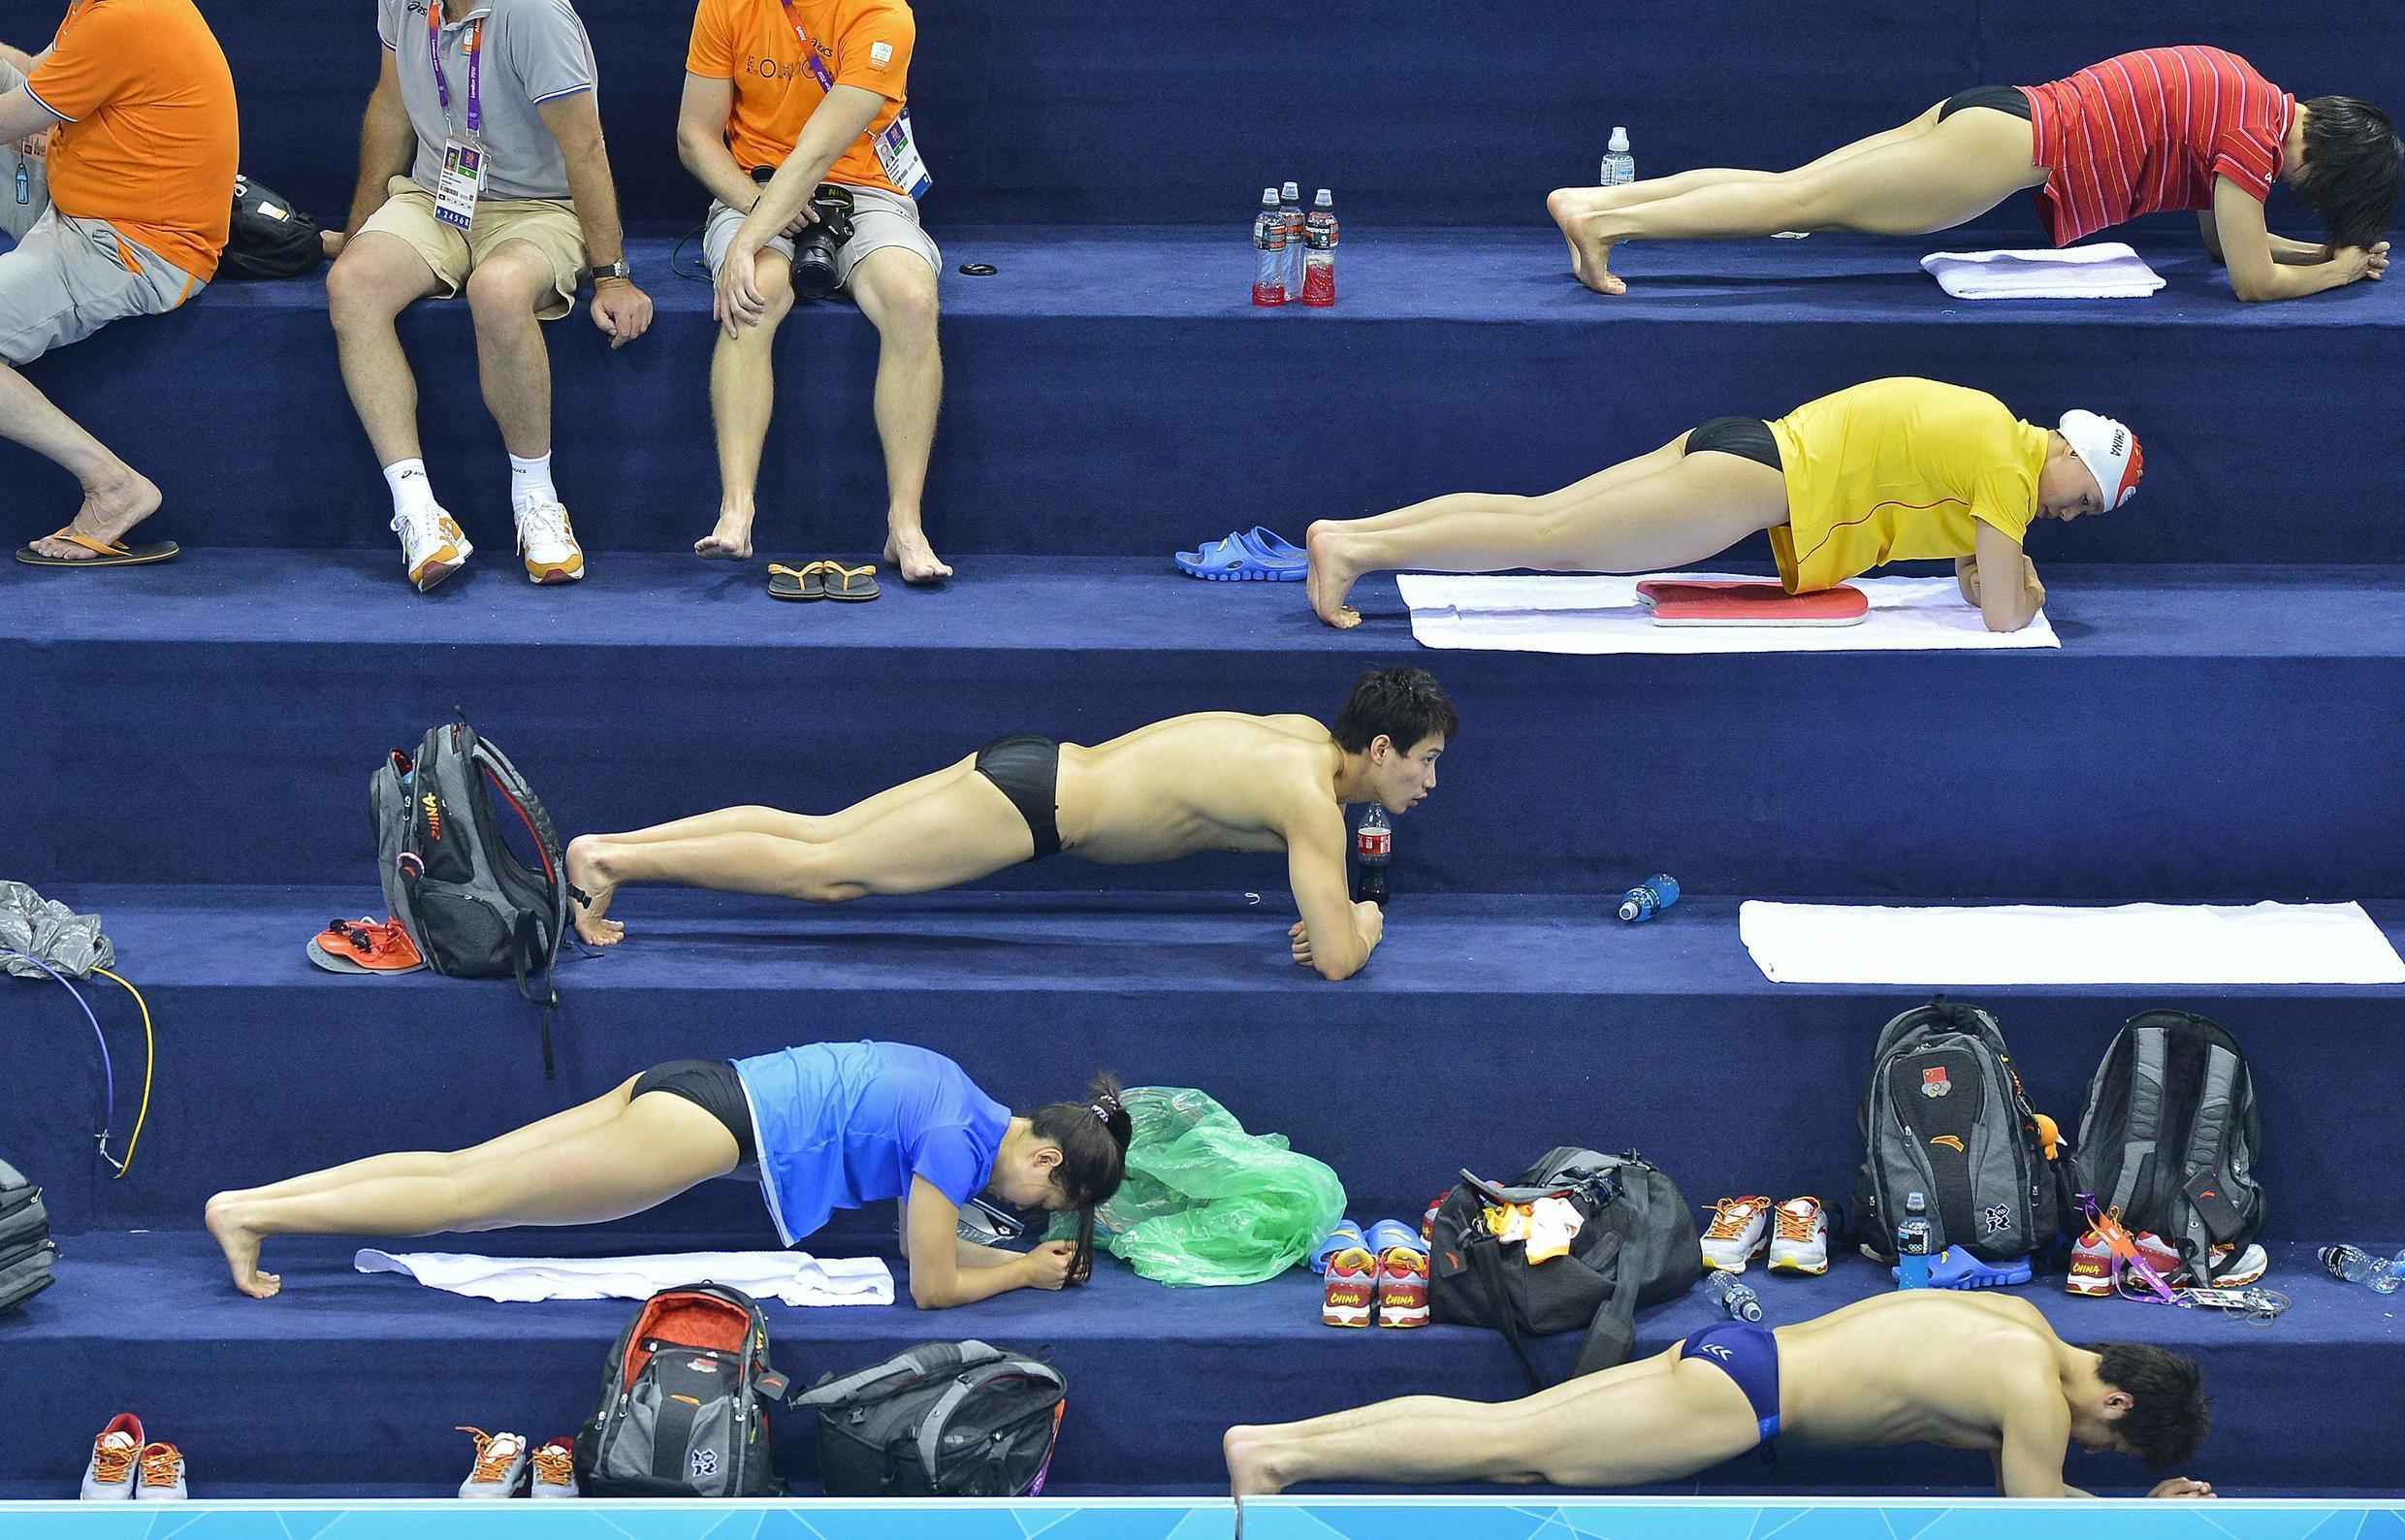 Chinese swimmers perform strength exercises at the Aquatics Centre in the Olympic Park in Stratford